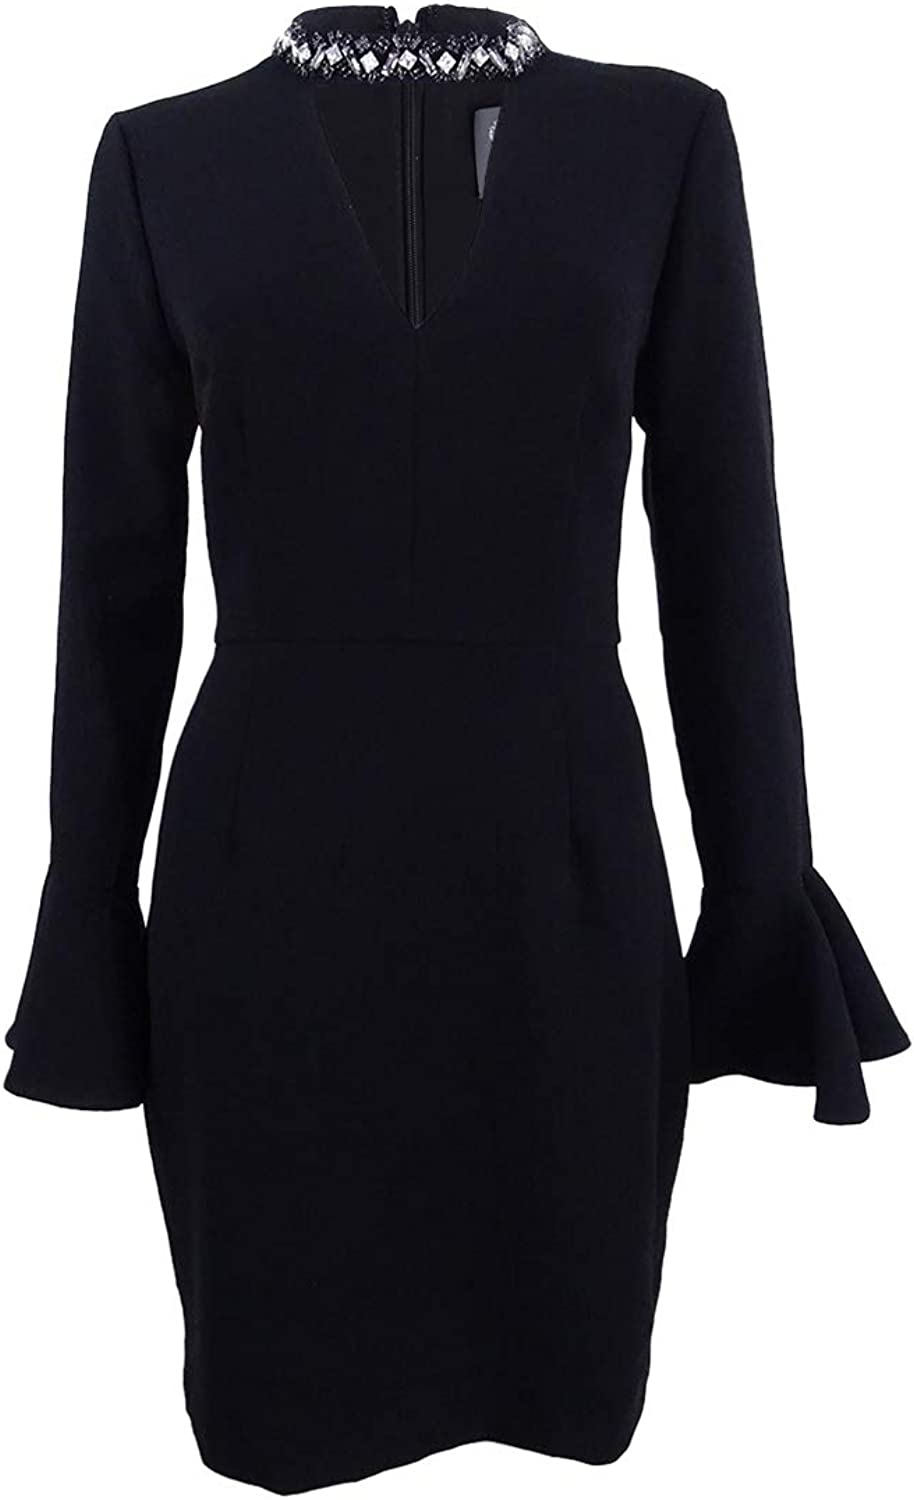 Vince Camuto Womens Embellished Choker Party Dress